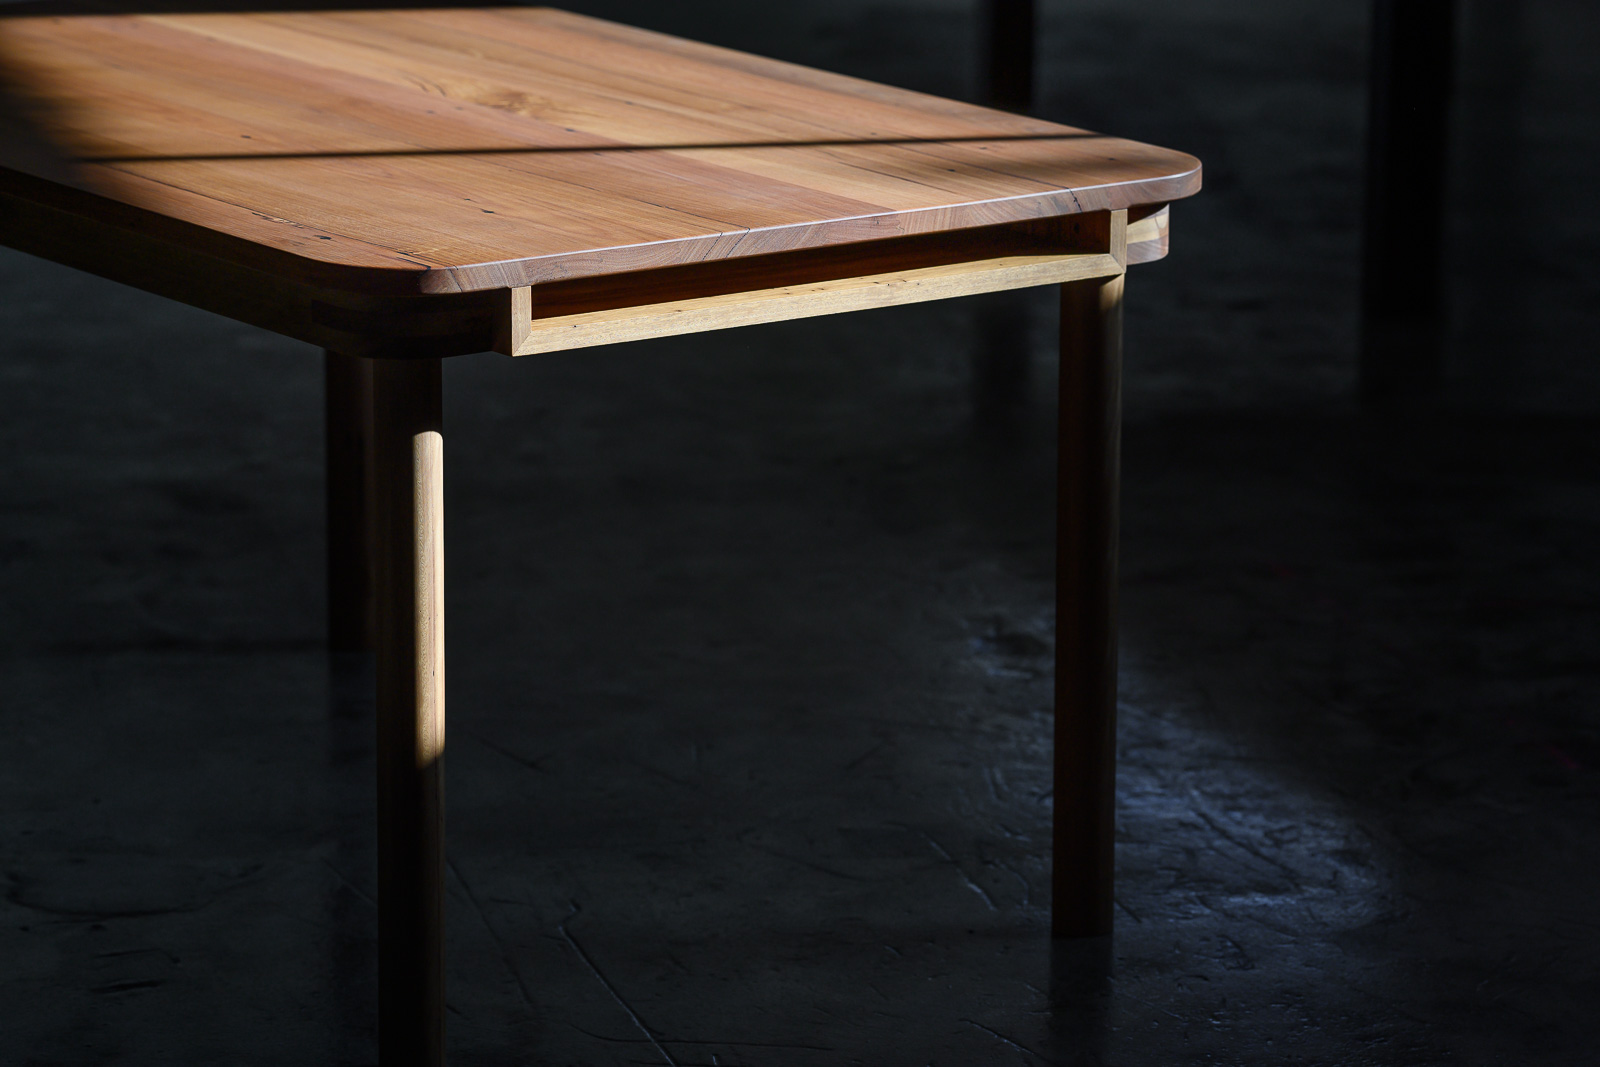 Side profile of the Dowel Leg Table